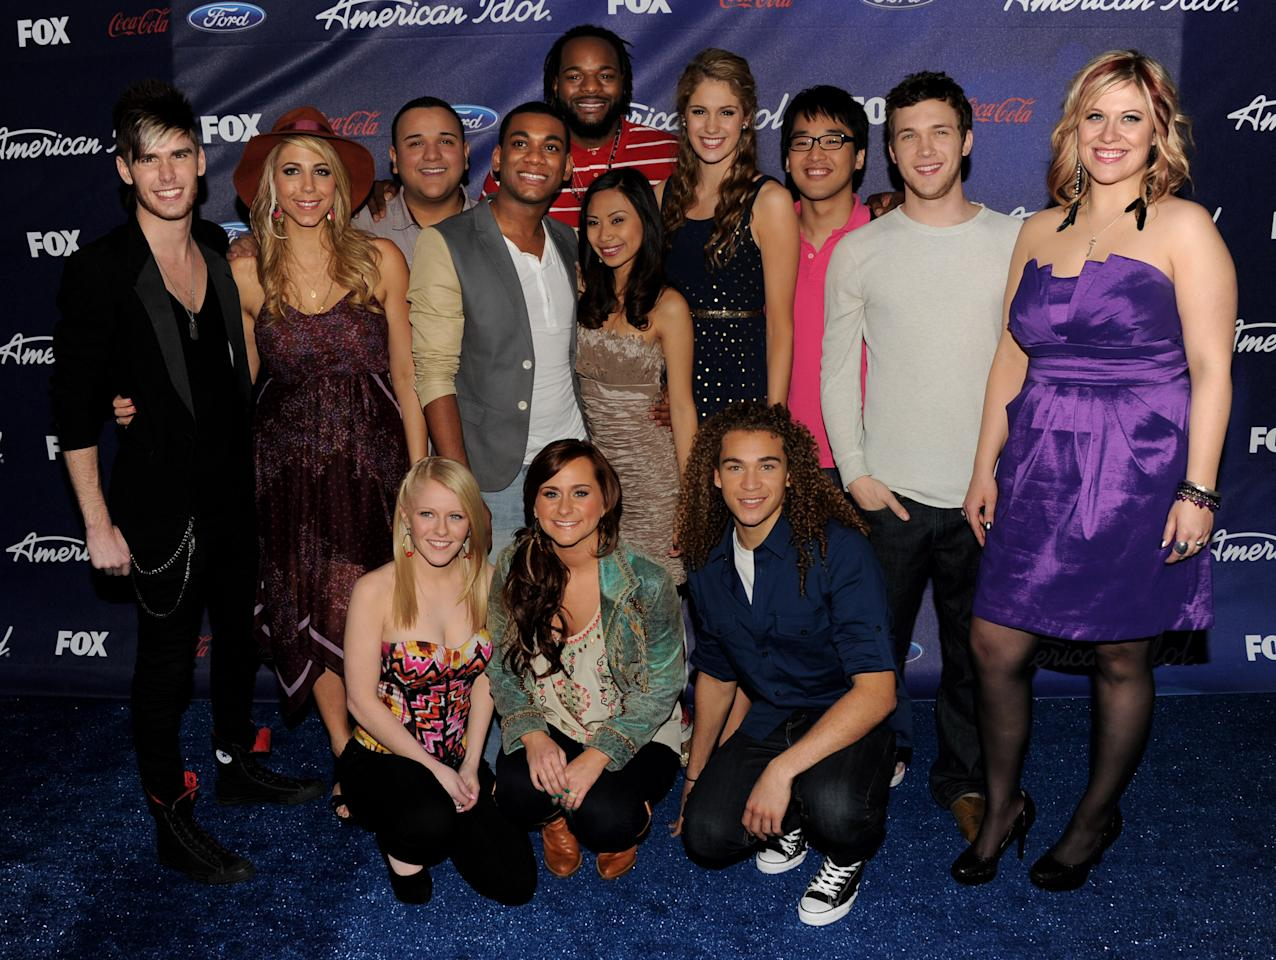 LOS ANGELES, CA - MARCH 01:  Final 13 contestants (L-R, front row) Hollie Cavanaugh, Skylar Laine and DeAndre Brackensick, (L-R, standing) Colton Dixon, Elise Testone, Jeremy Rosado, Joshua Ledet, Jermaine Jones, Jessica Sanchez, Shannon Magrane, Heejun Han and Phillip Phillips arrive at Fox's American Idol finalist party at The Grove on March 1, 2012 in Los Angeles, California.  (Photo by Kevin Winter/Getty Images)